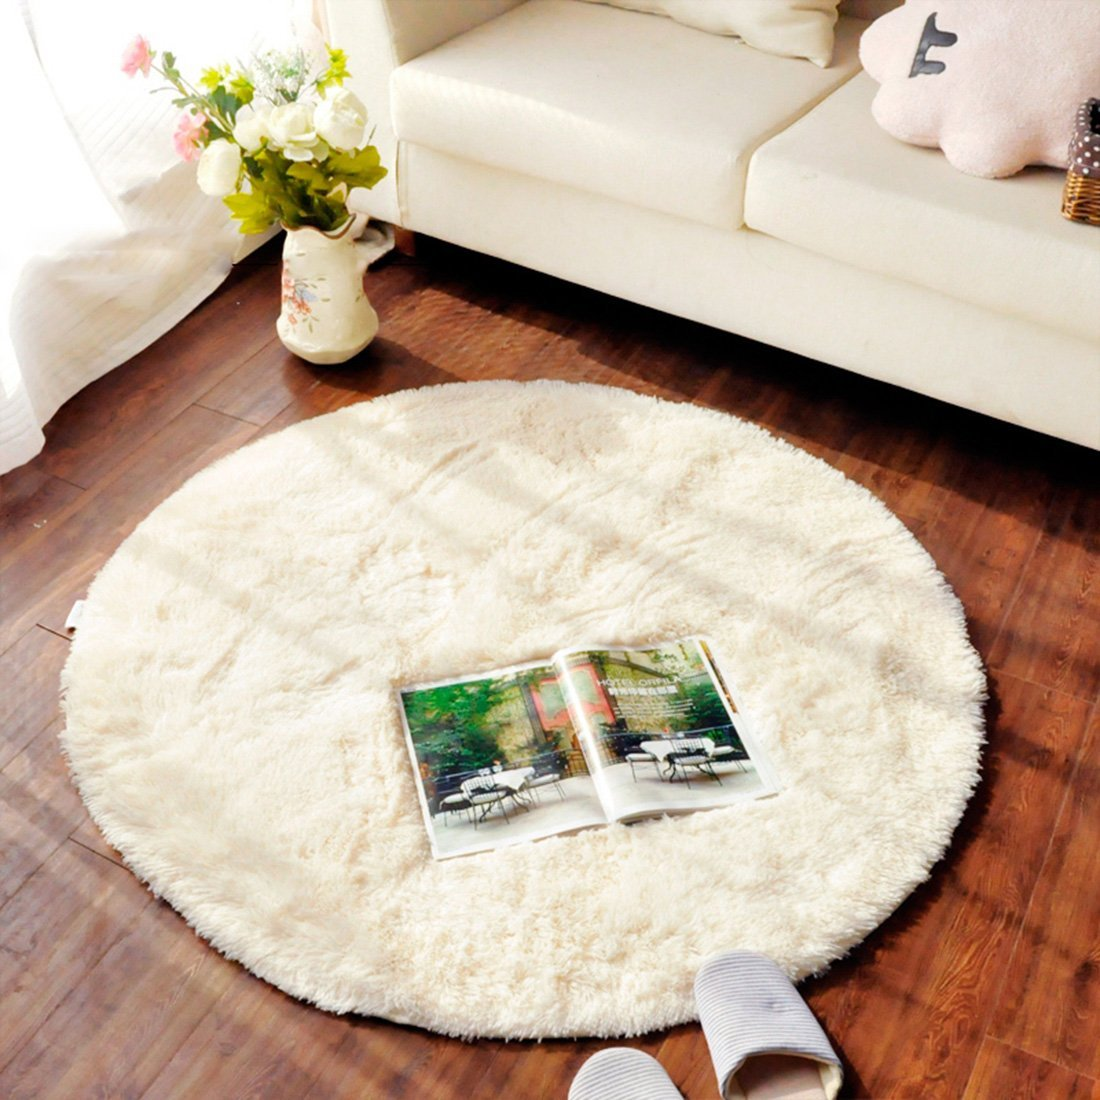 Amazon ONEONEY Round Shaggy Area Rugs And Carpet Super Soft Bedroom Rug For Kids Play Blue315315 Home Kitchen